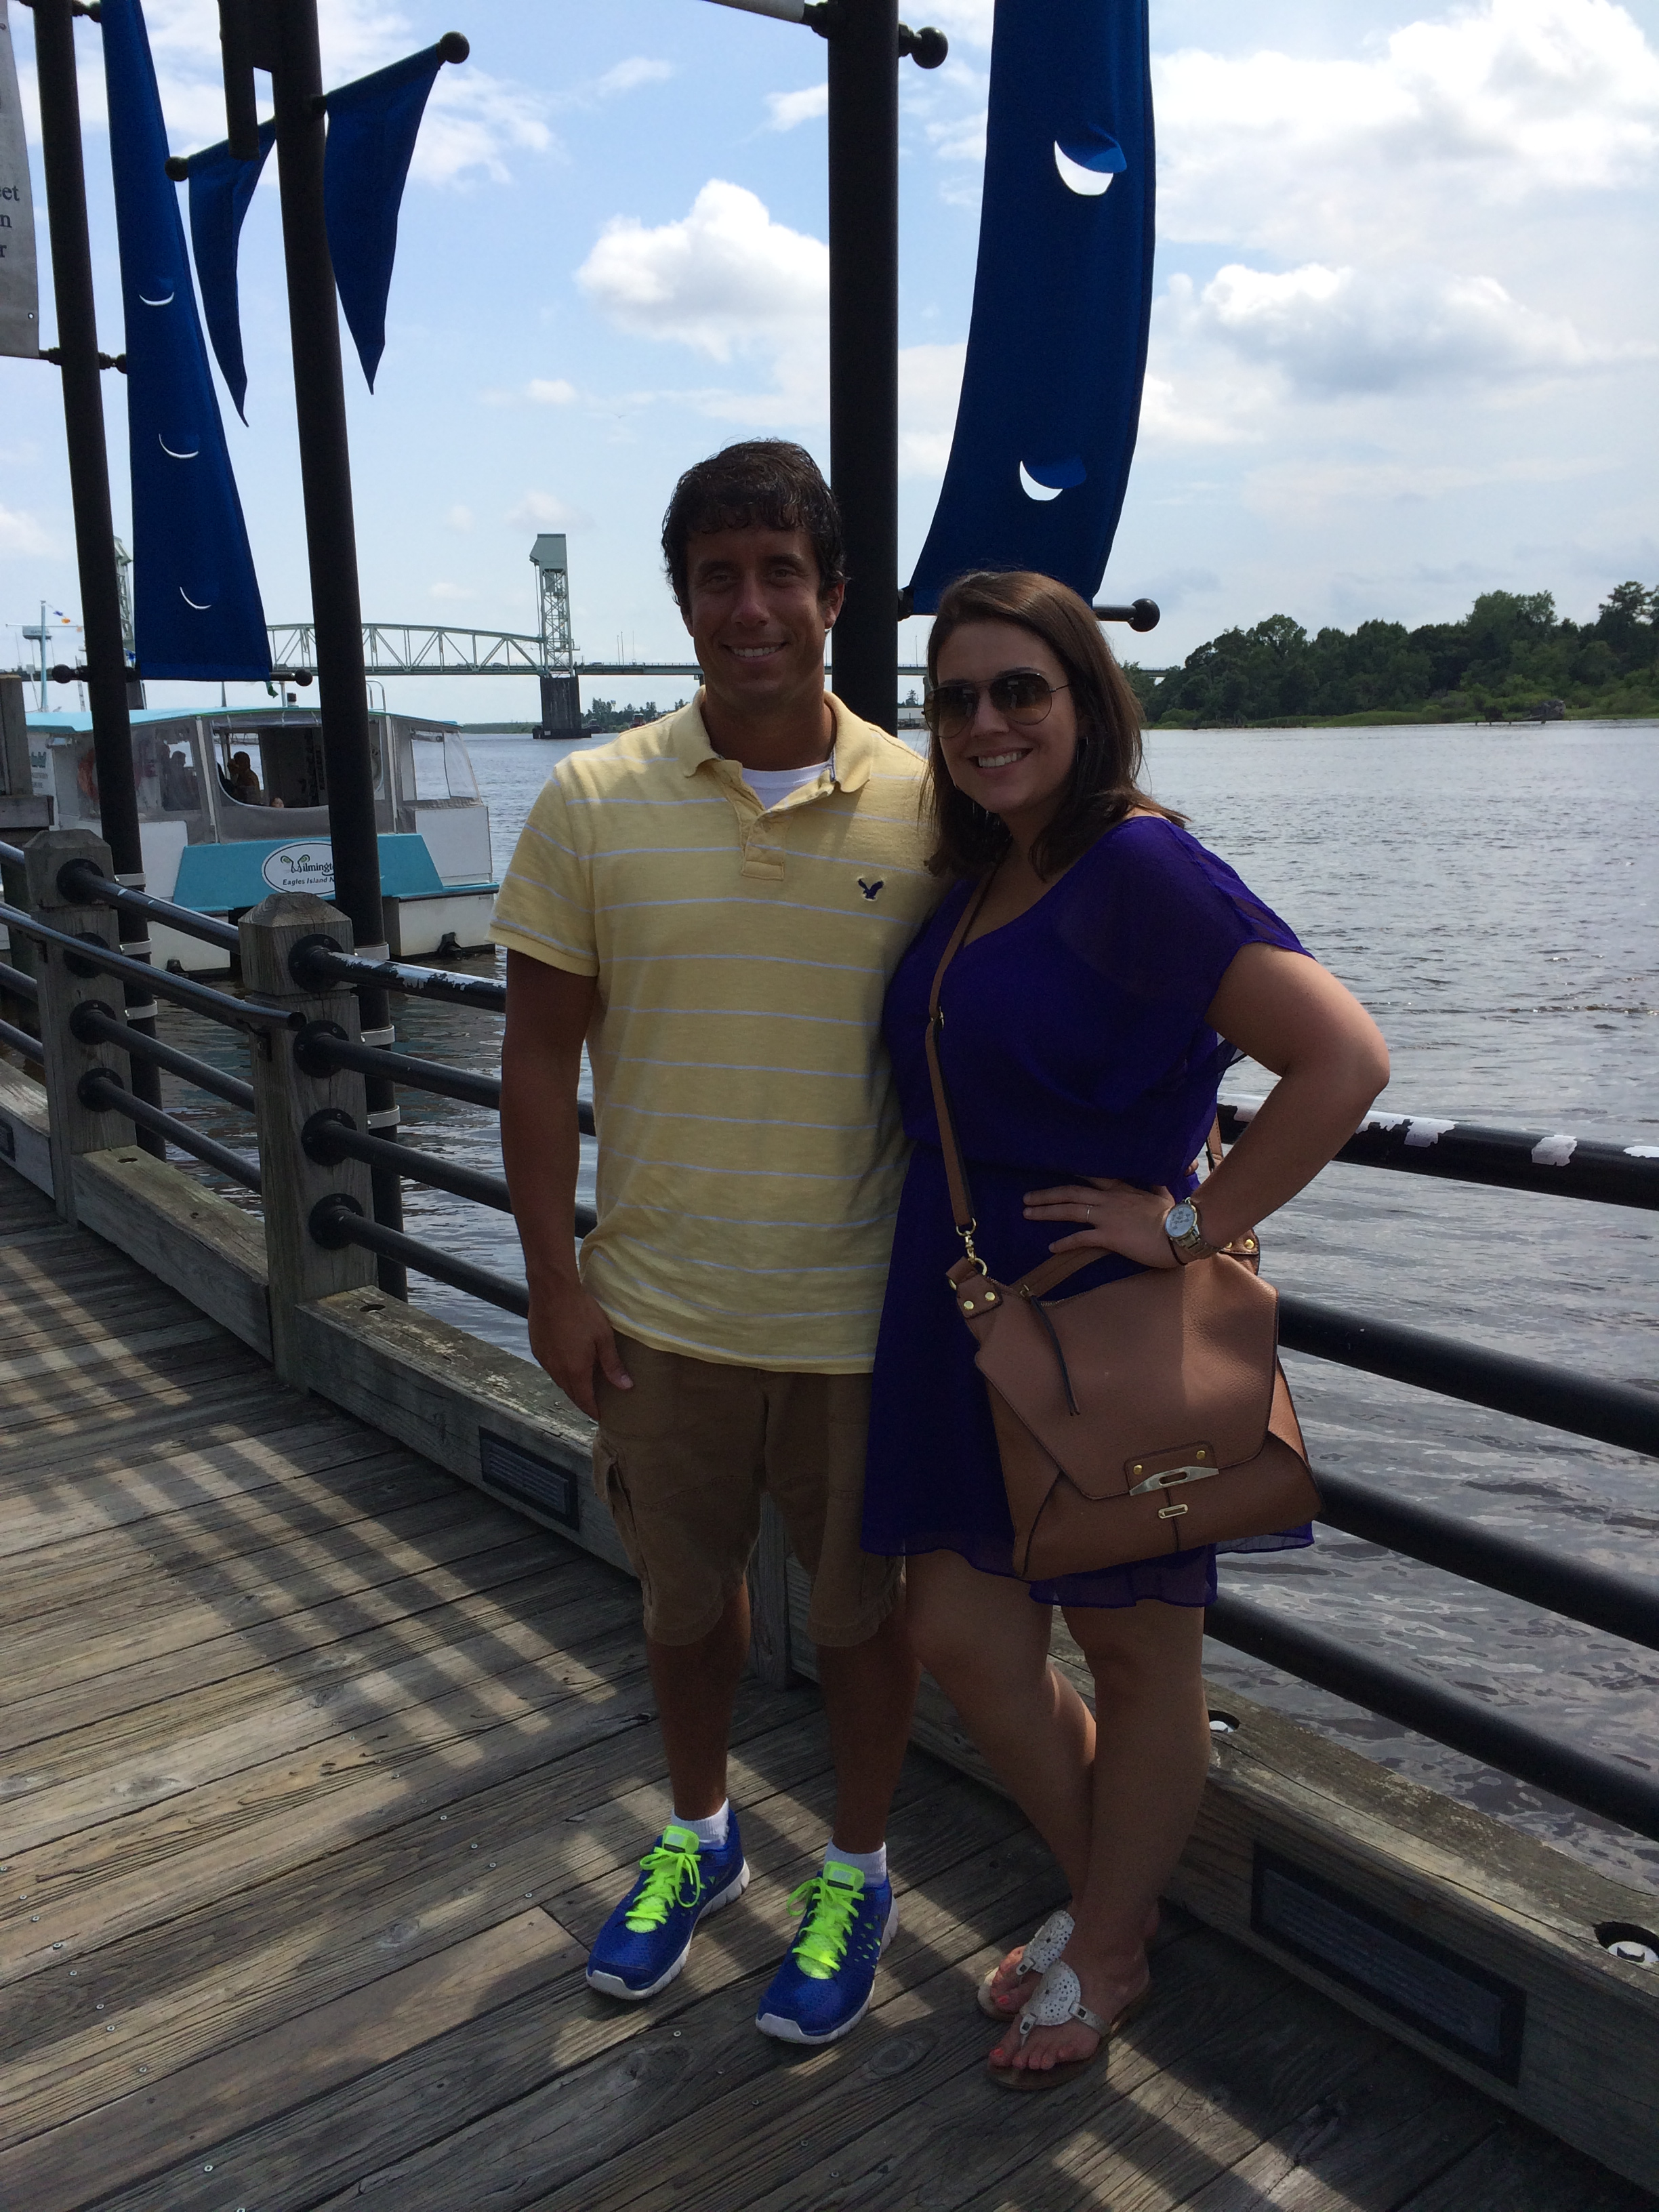 Sidney and I in the beautiful city of Wilmington on Saturday.